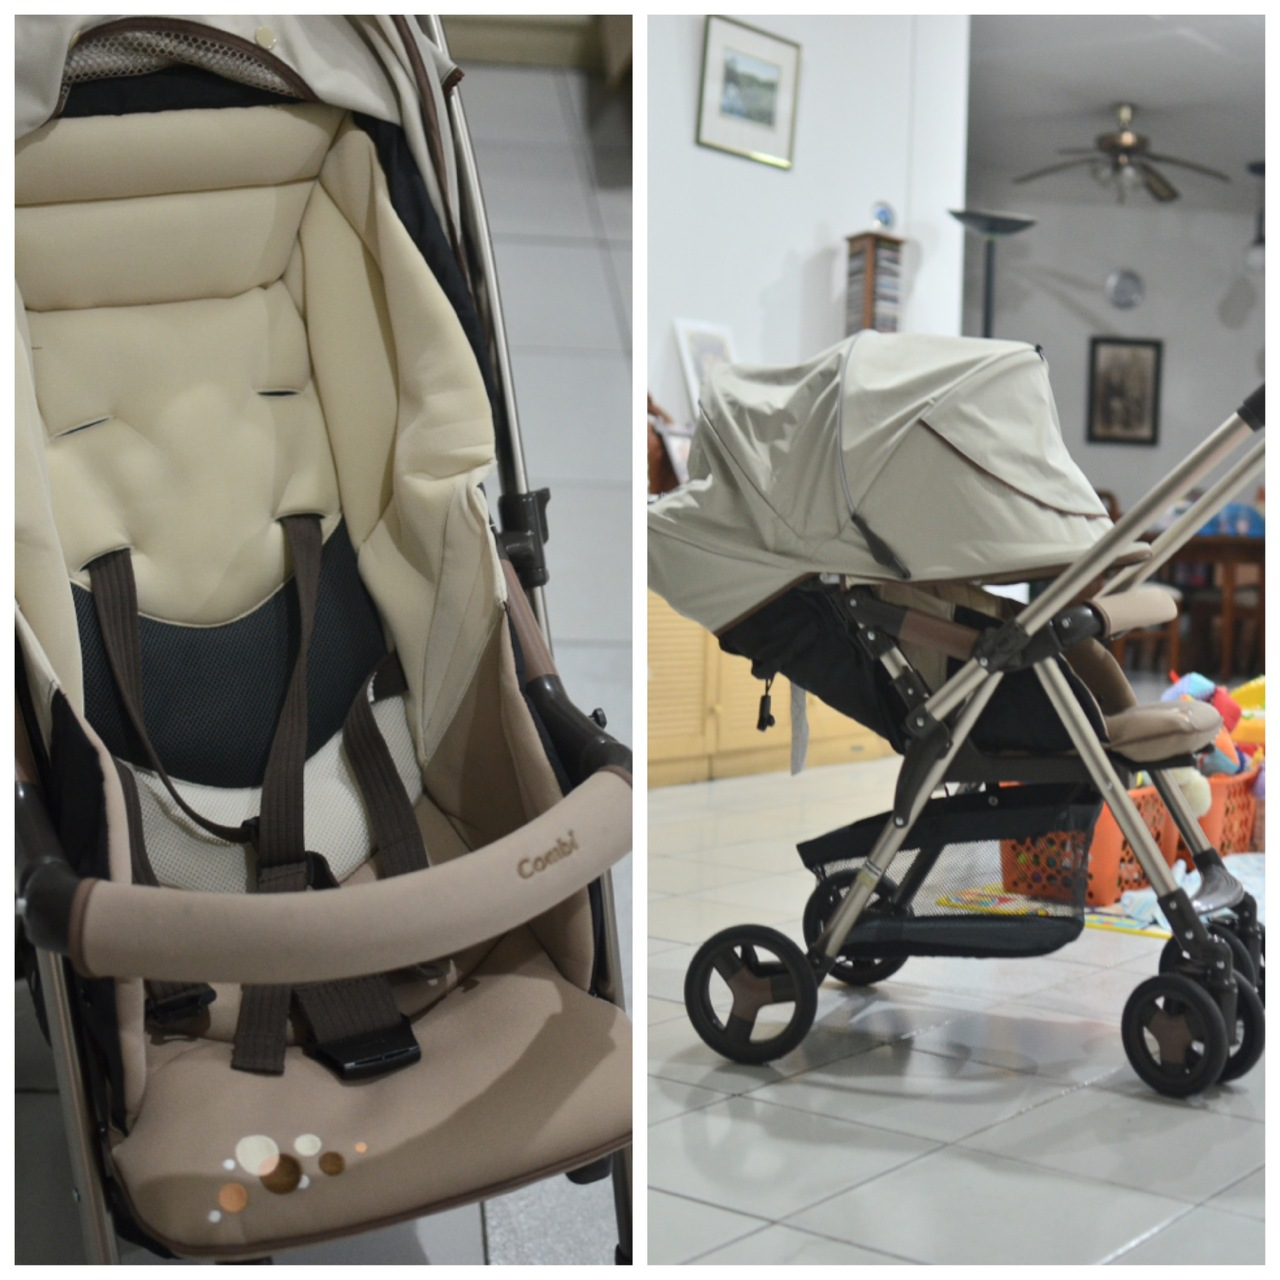 Wtb: stroller that reclines and lets bb lie flat ...